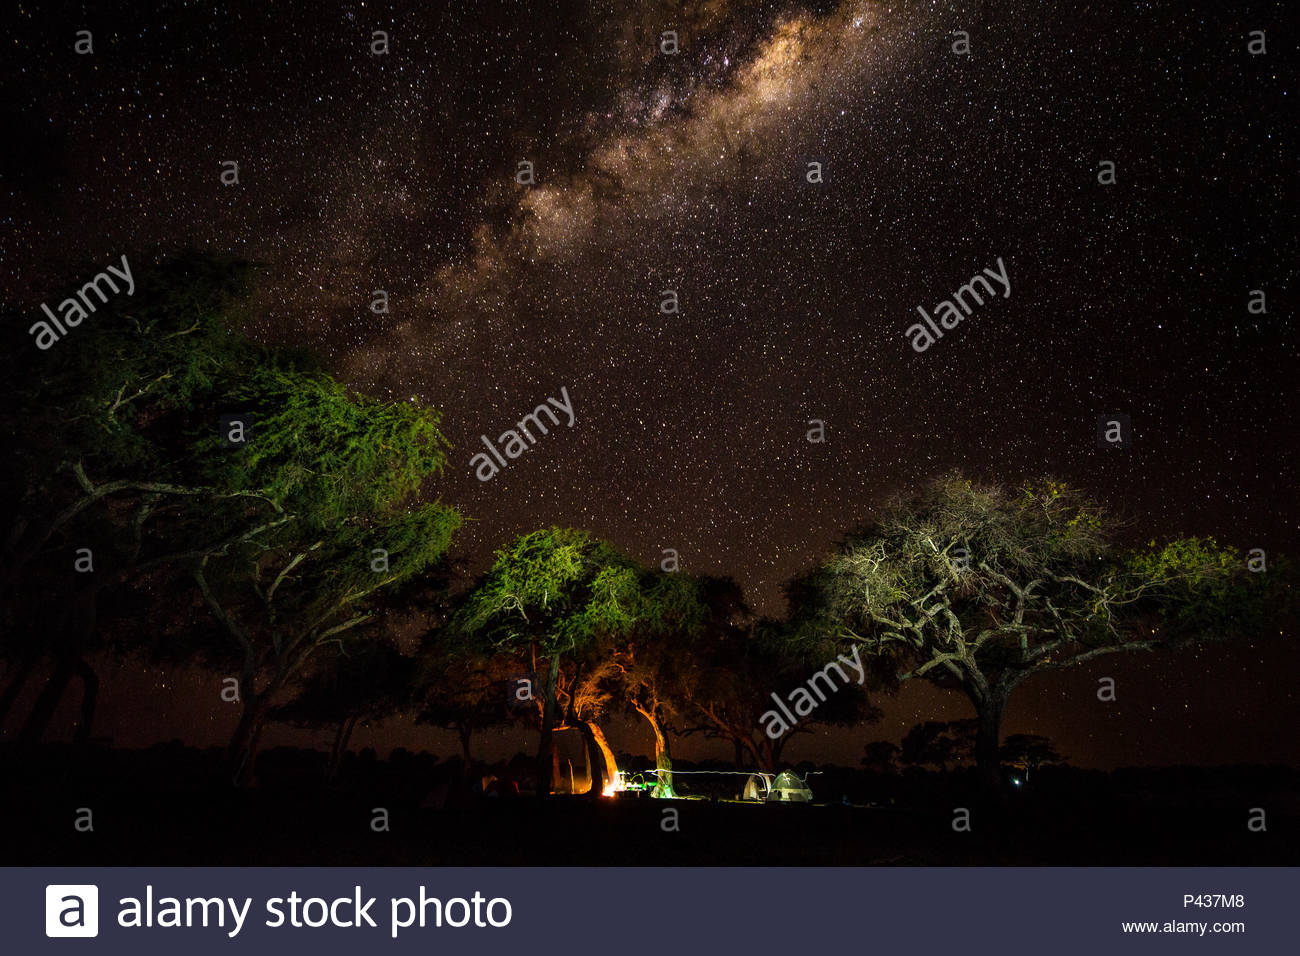 The Milky Way above an expedition campsite in the Okavango Delta. - Stock Image